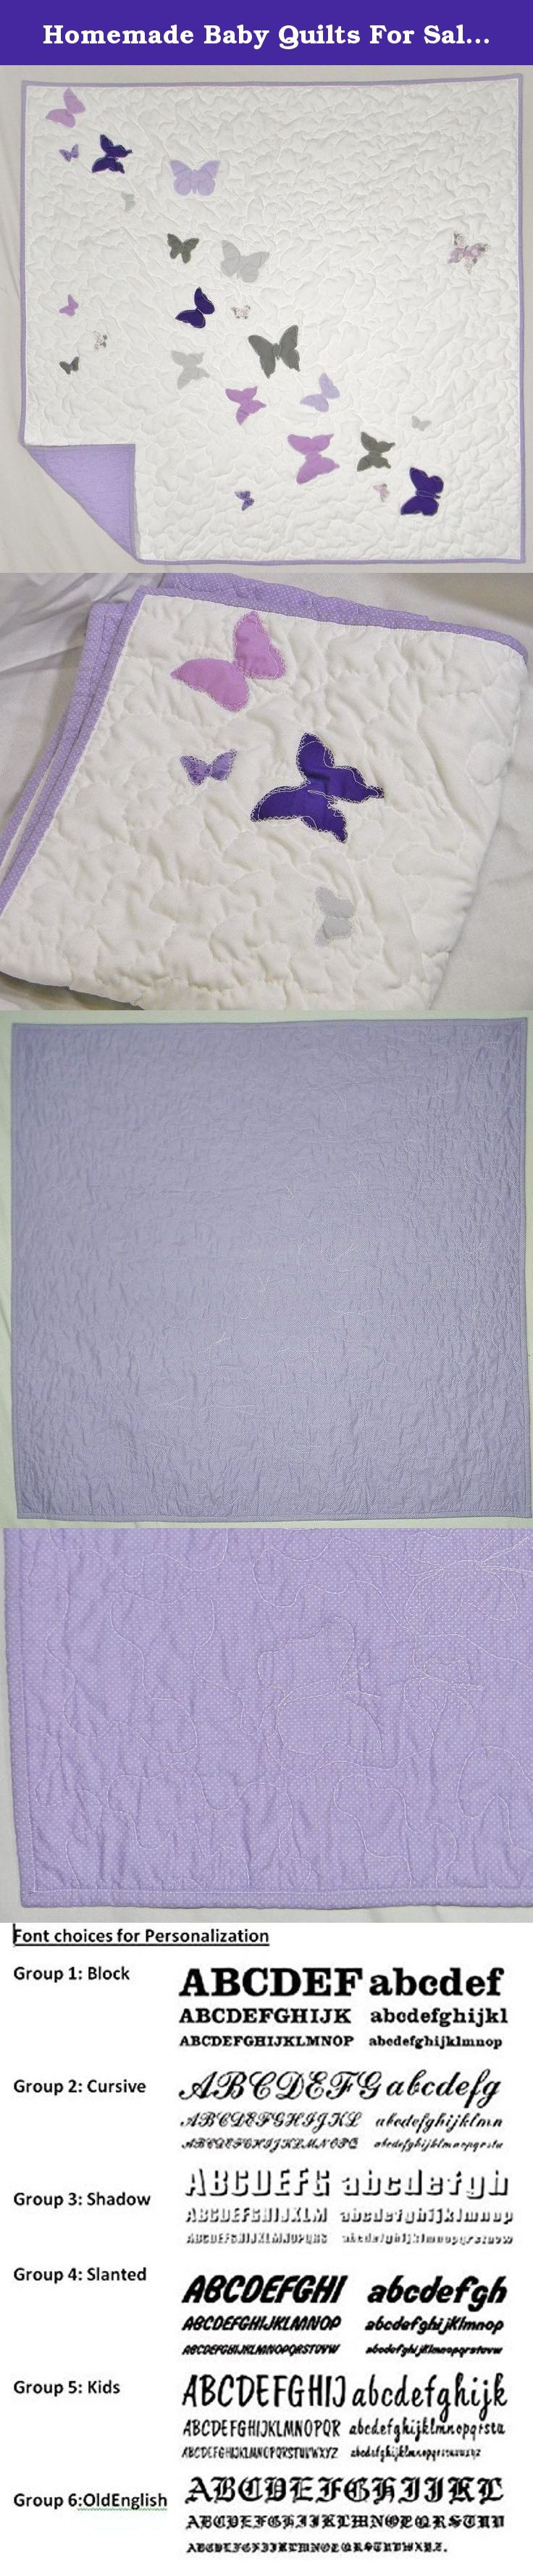 Ellery round crib for sale - Homemade Baby Quilts For Sale Purple Nursery Bedding Baby Girl Quilt Butterfly Nursery